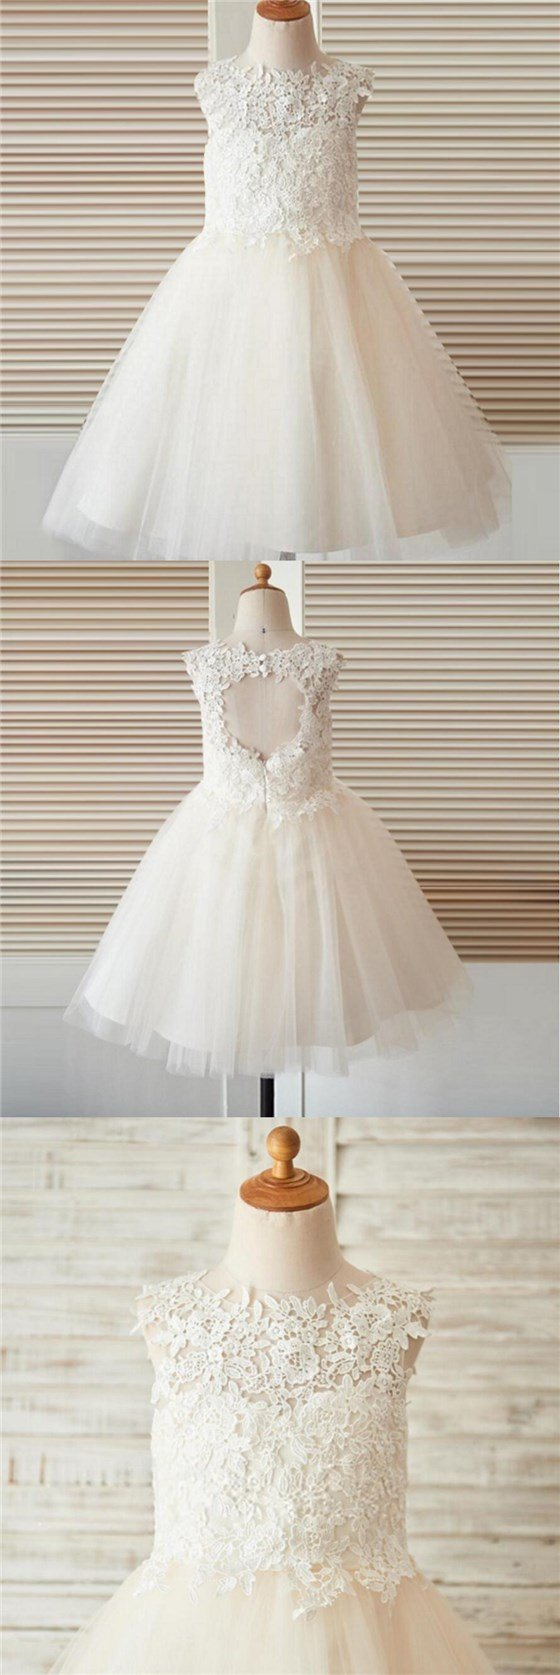 Open Back Top Lace Flower Girl Dresses for 2018 Wedding , Best Sale Junior Bridesmaid Dresses, FG094